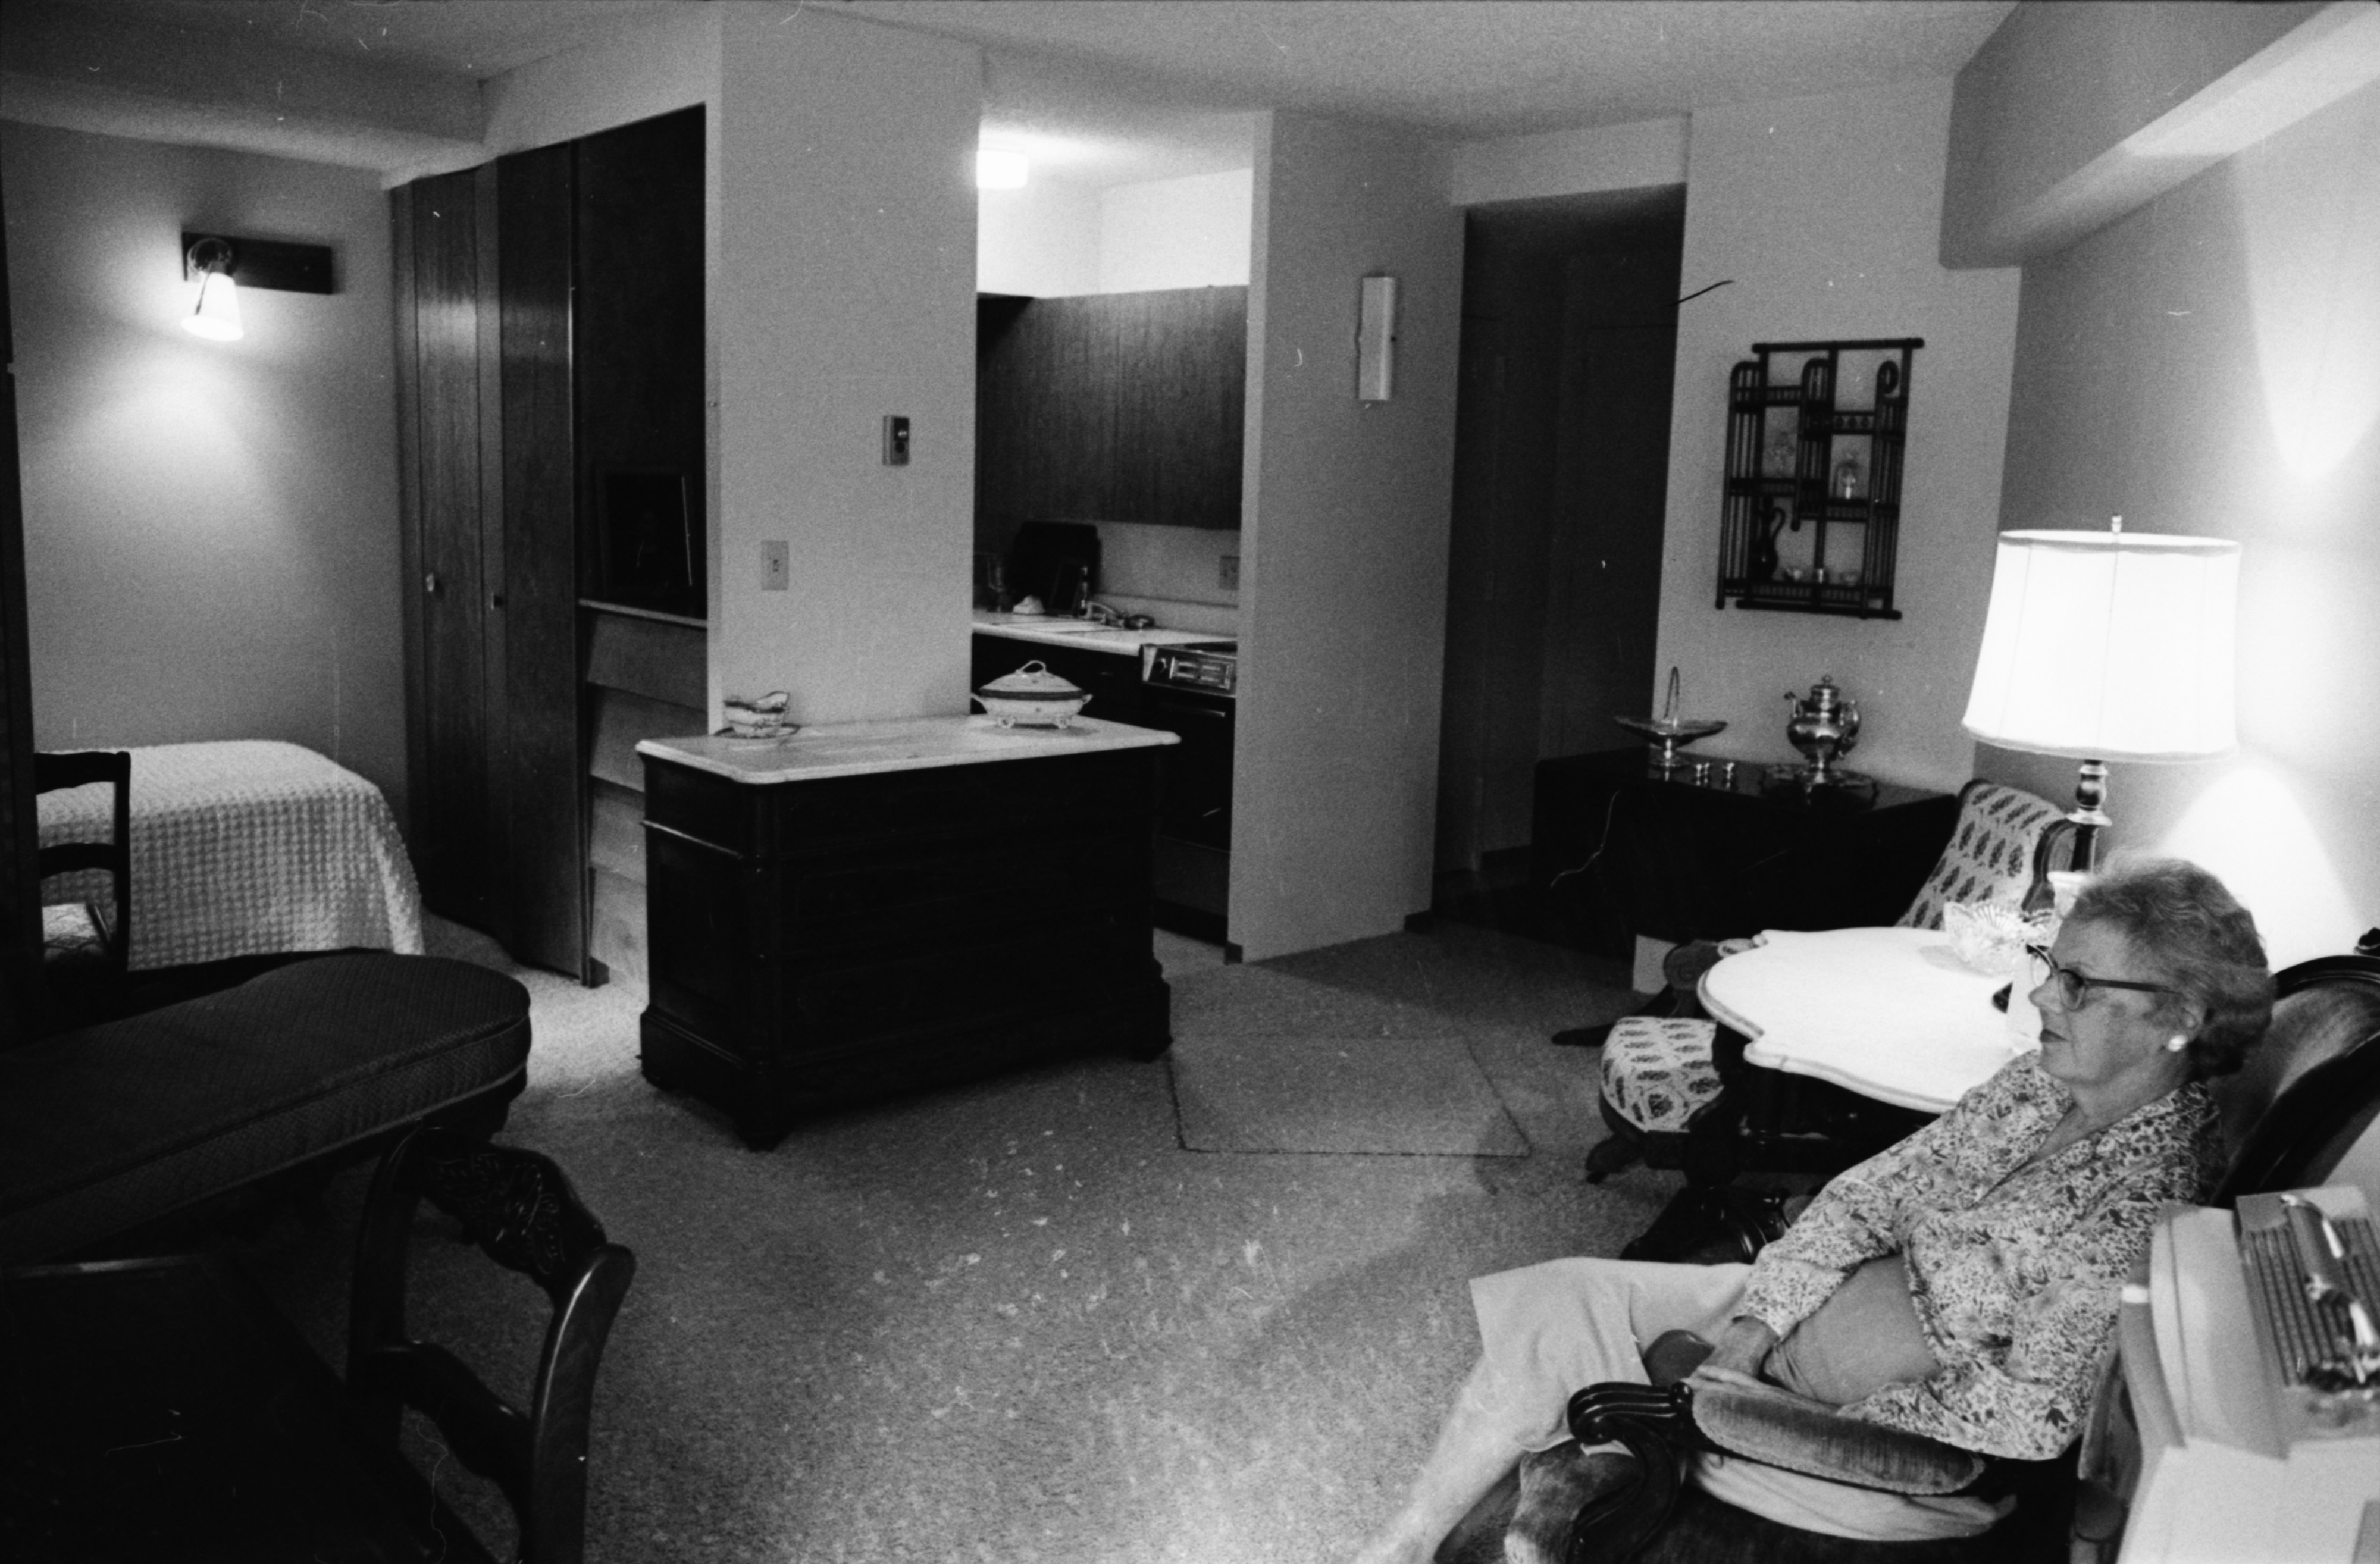 Interior apartment, Lurie Terrace, October 1964 image